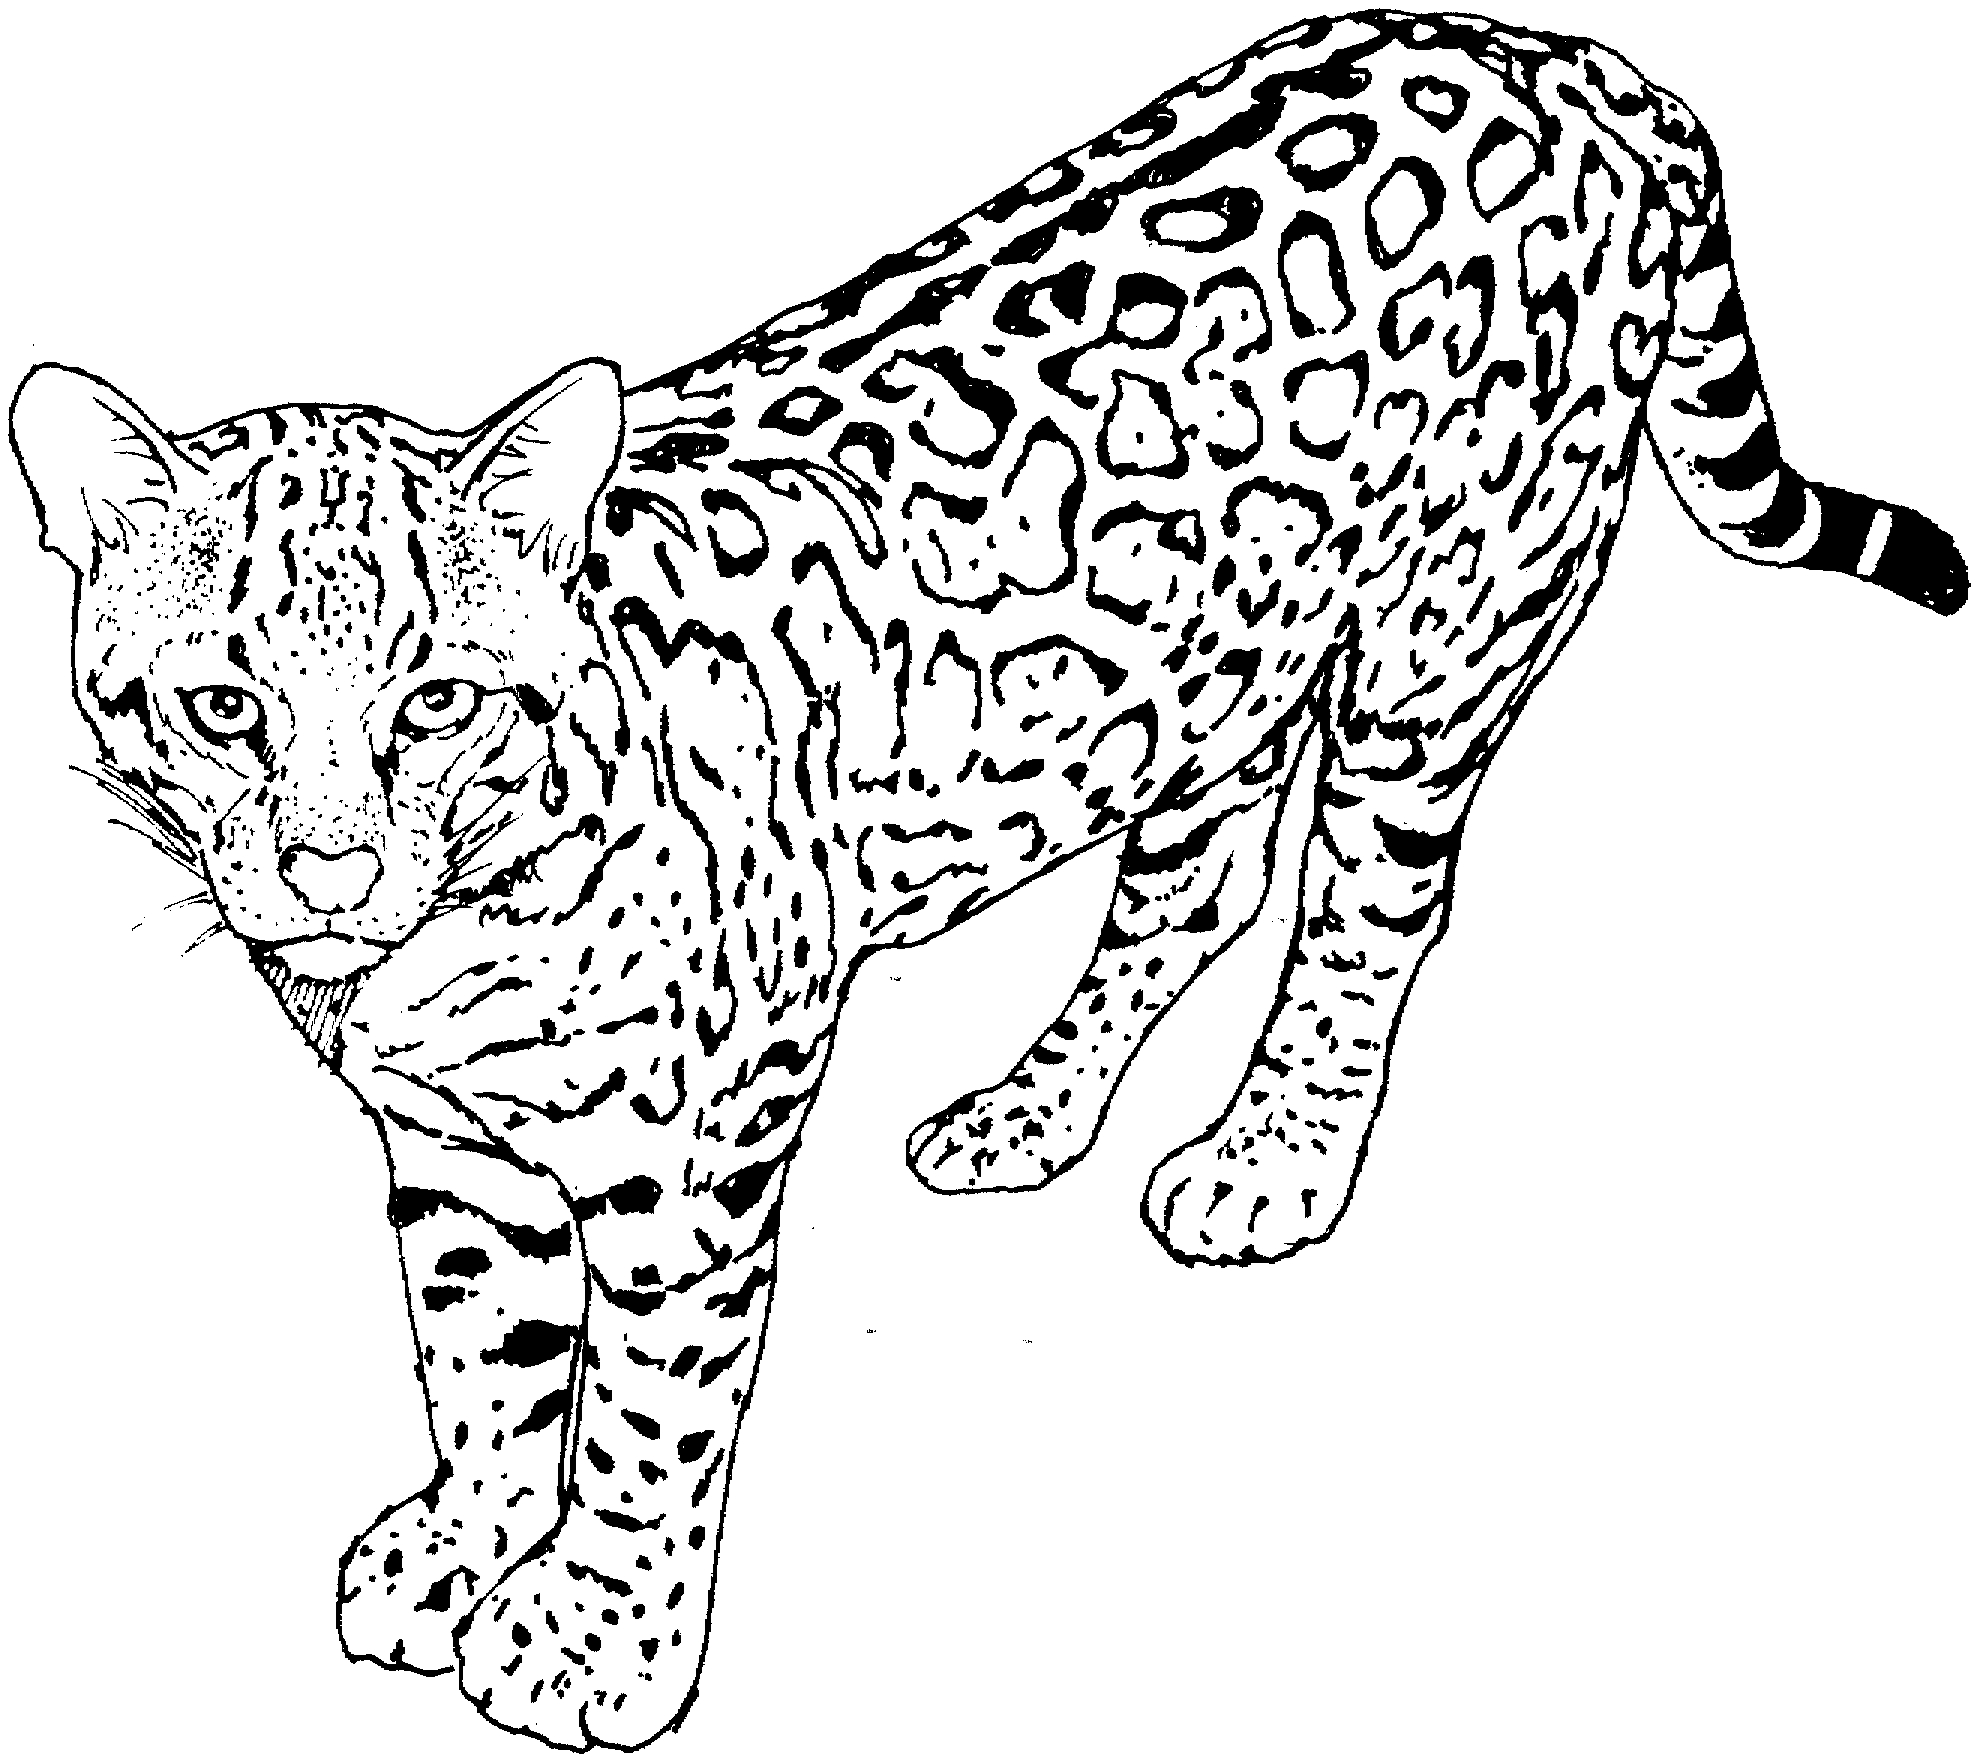 cat coloring pages free printable - q=cat